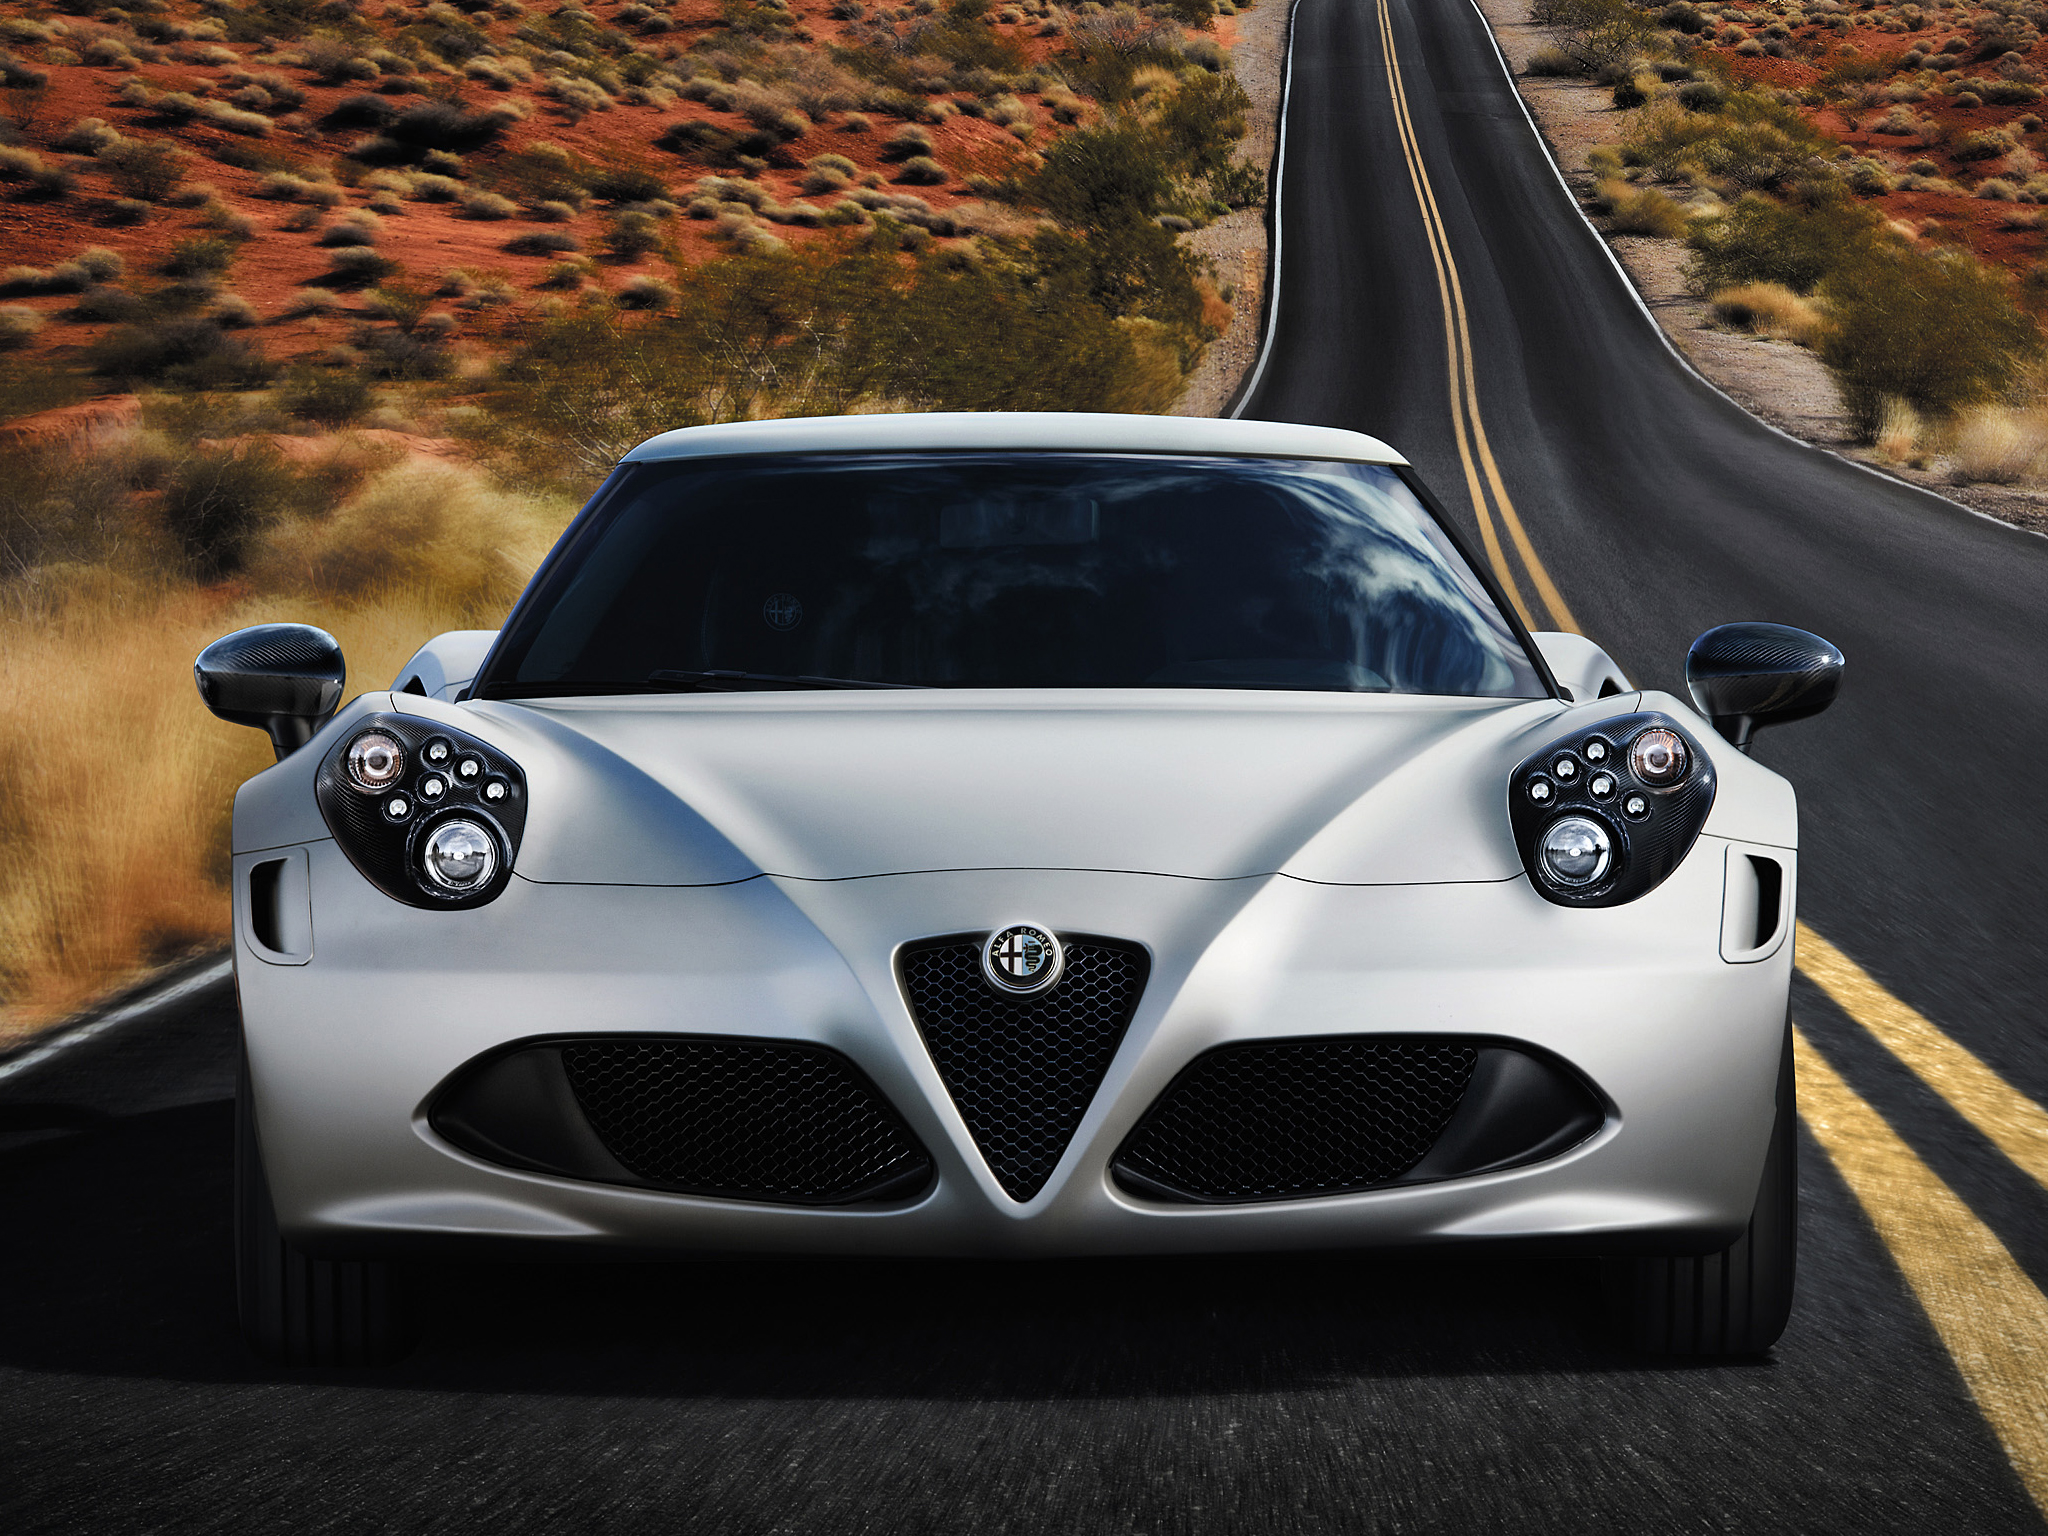 alfa romeo 4c launch edition limited to 1 000 units. Black Bedroom Furniture Sets. Home Design Ideas